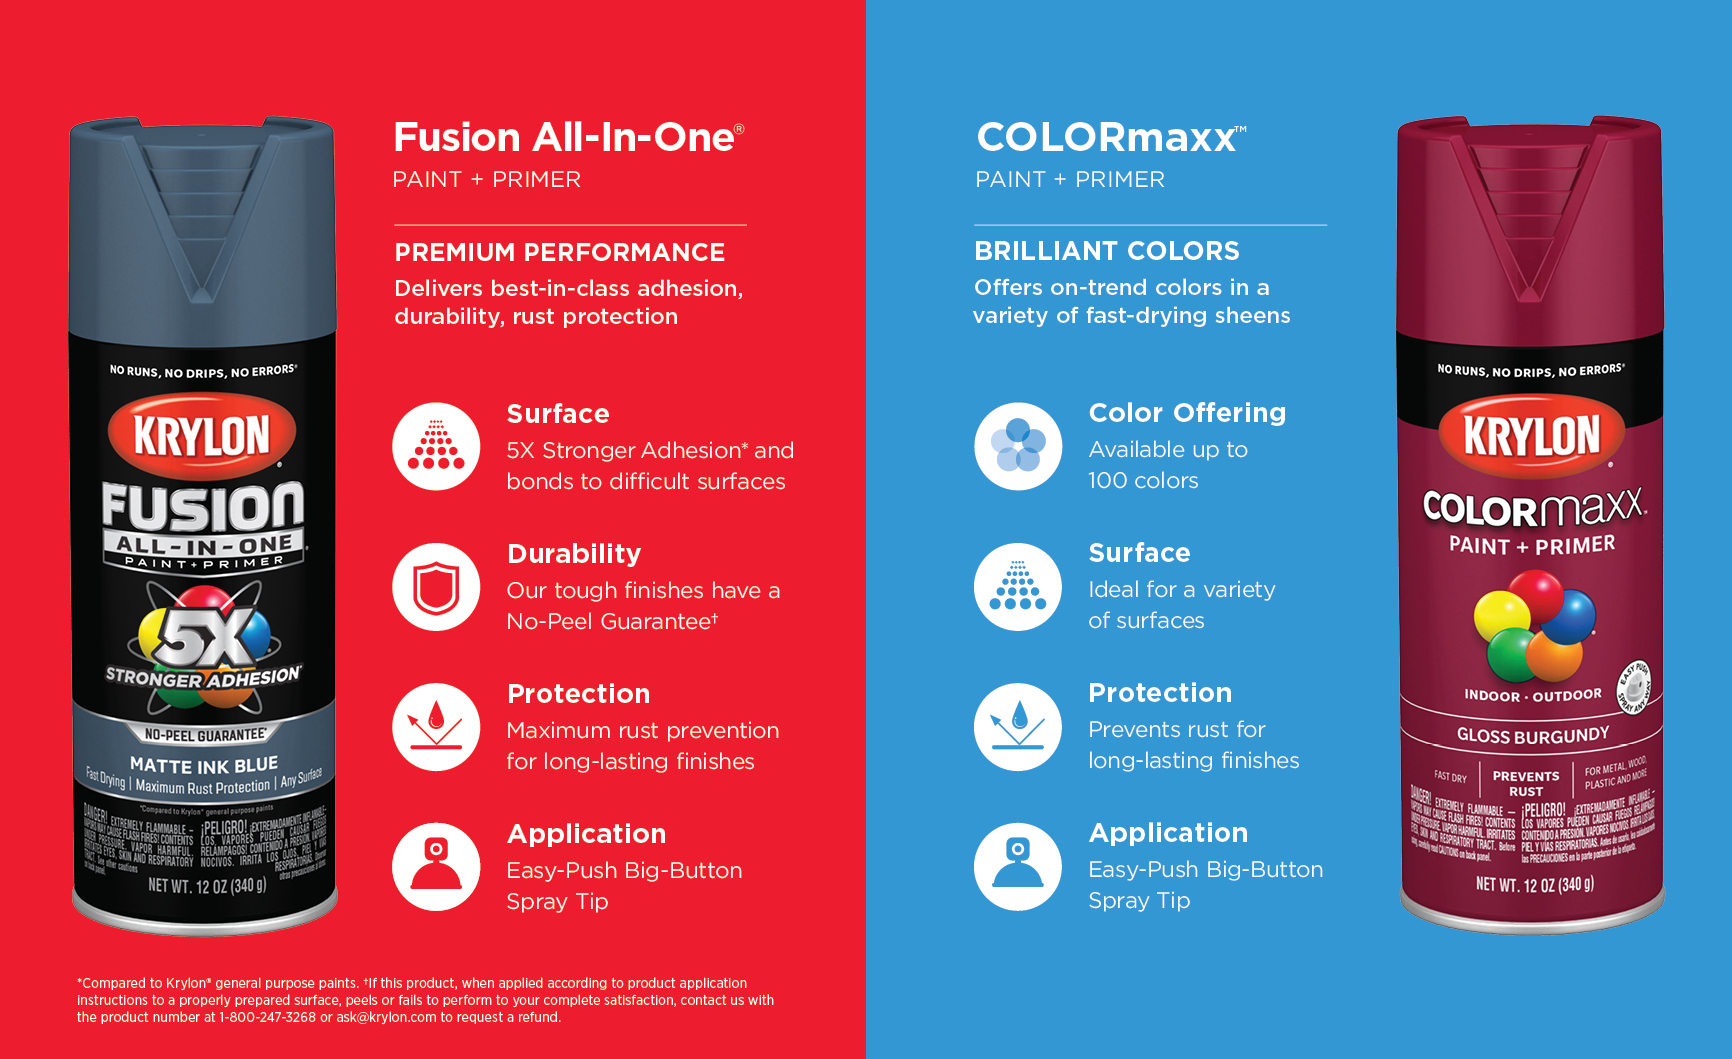 Krylon® Fusion All-In-One™ and COLORmaxx | Krylon